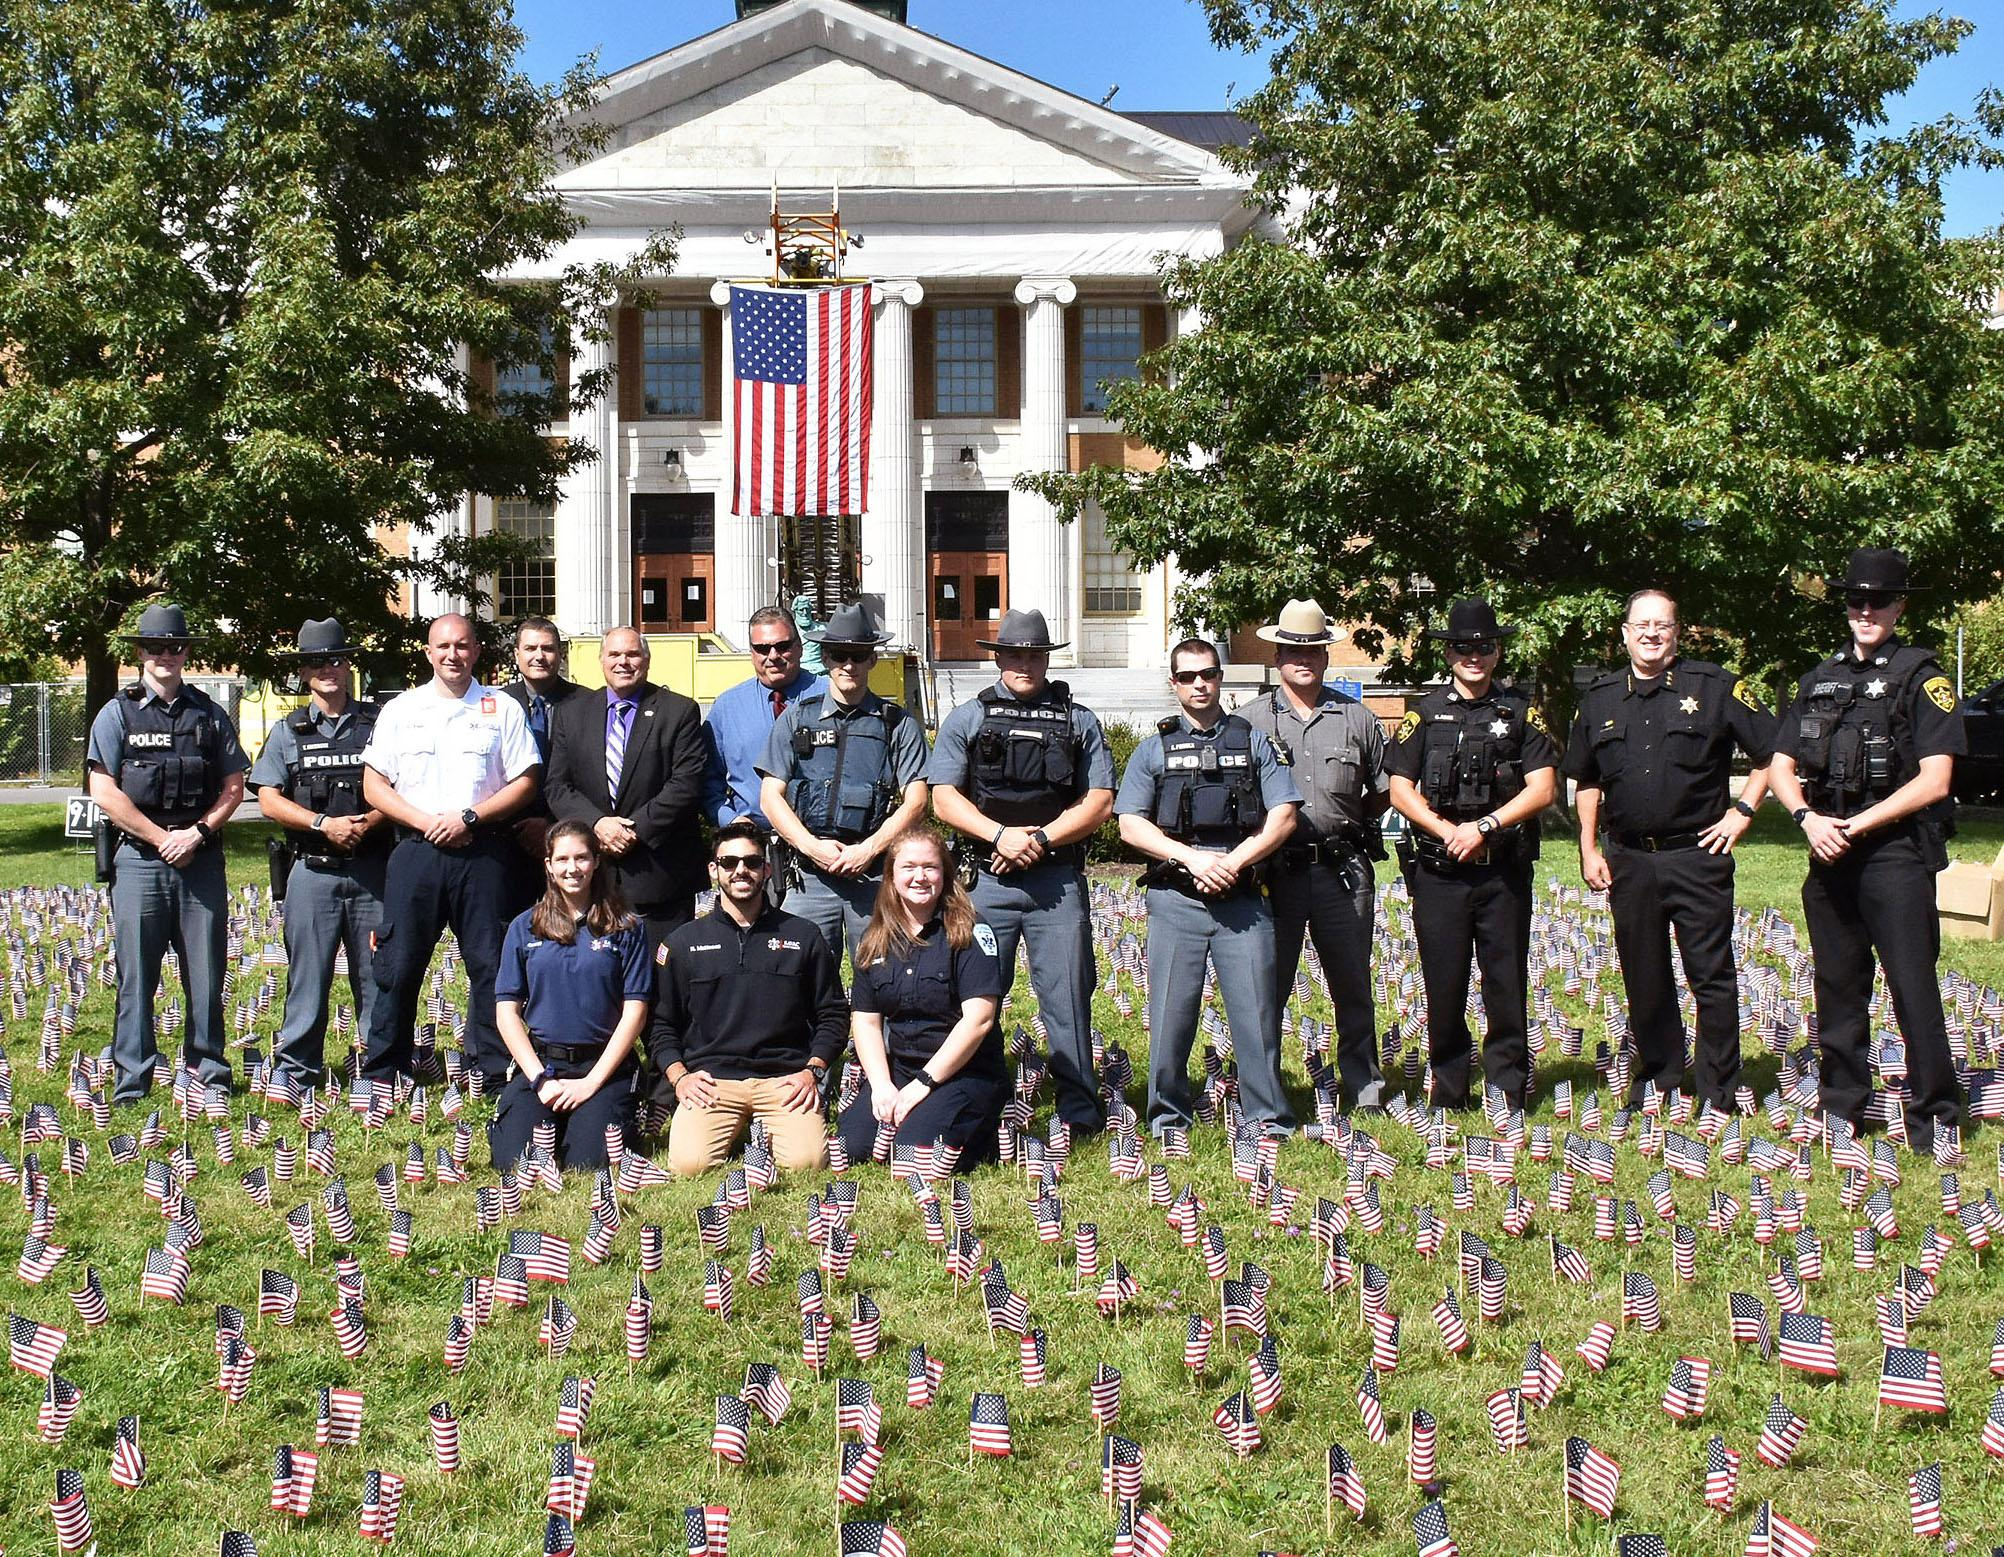 University Police and local law enforcement and first responders participated in this year's effort to plant 2,996 flags in front of Sheldon Hall to remember the lives lost in the Sept. 11, 2001 terrorist attacks.